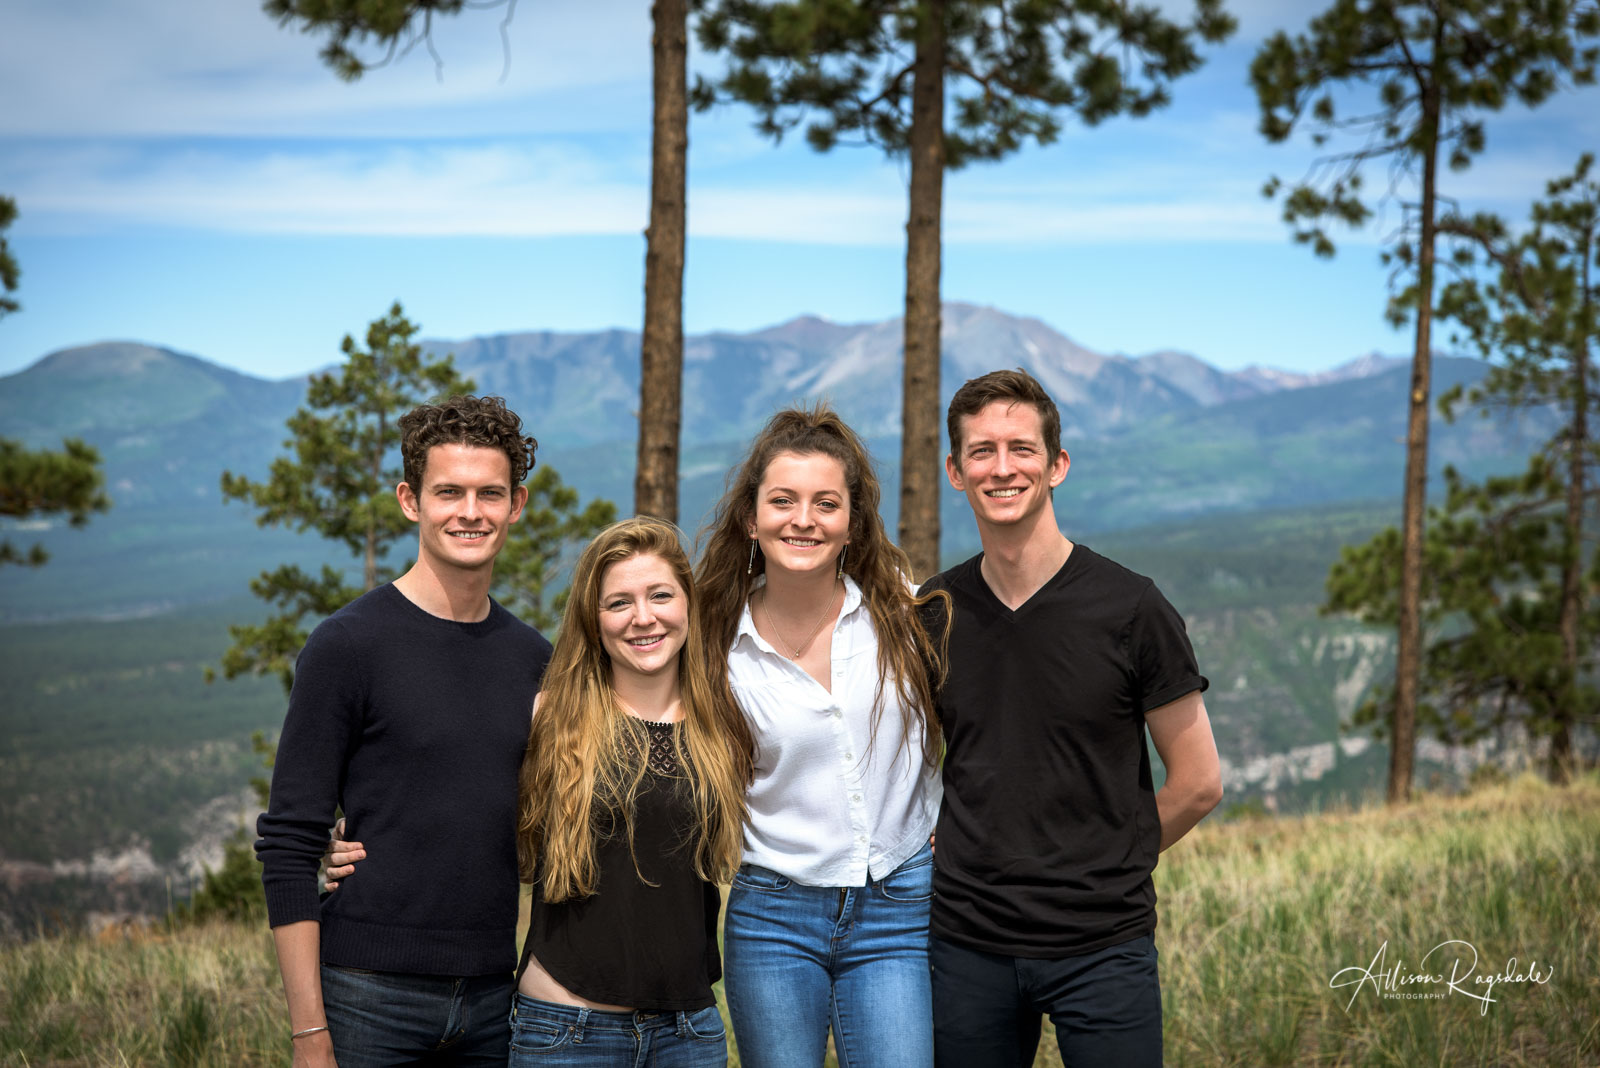 Family portraits by Allison Ragsdale Photography in Durango Colorado